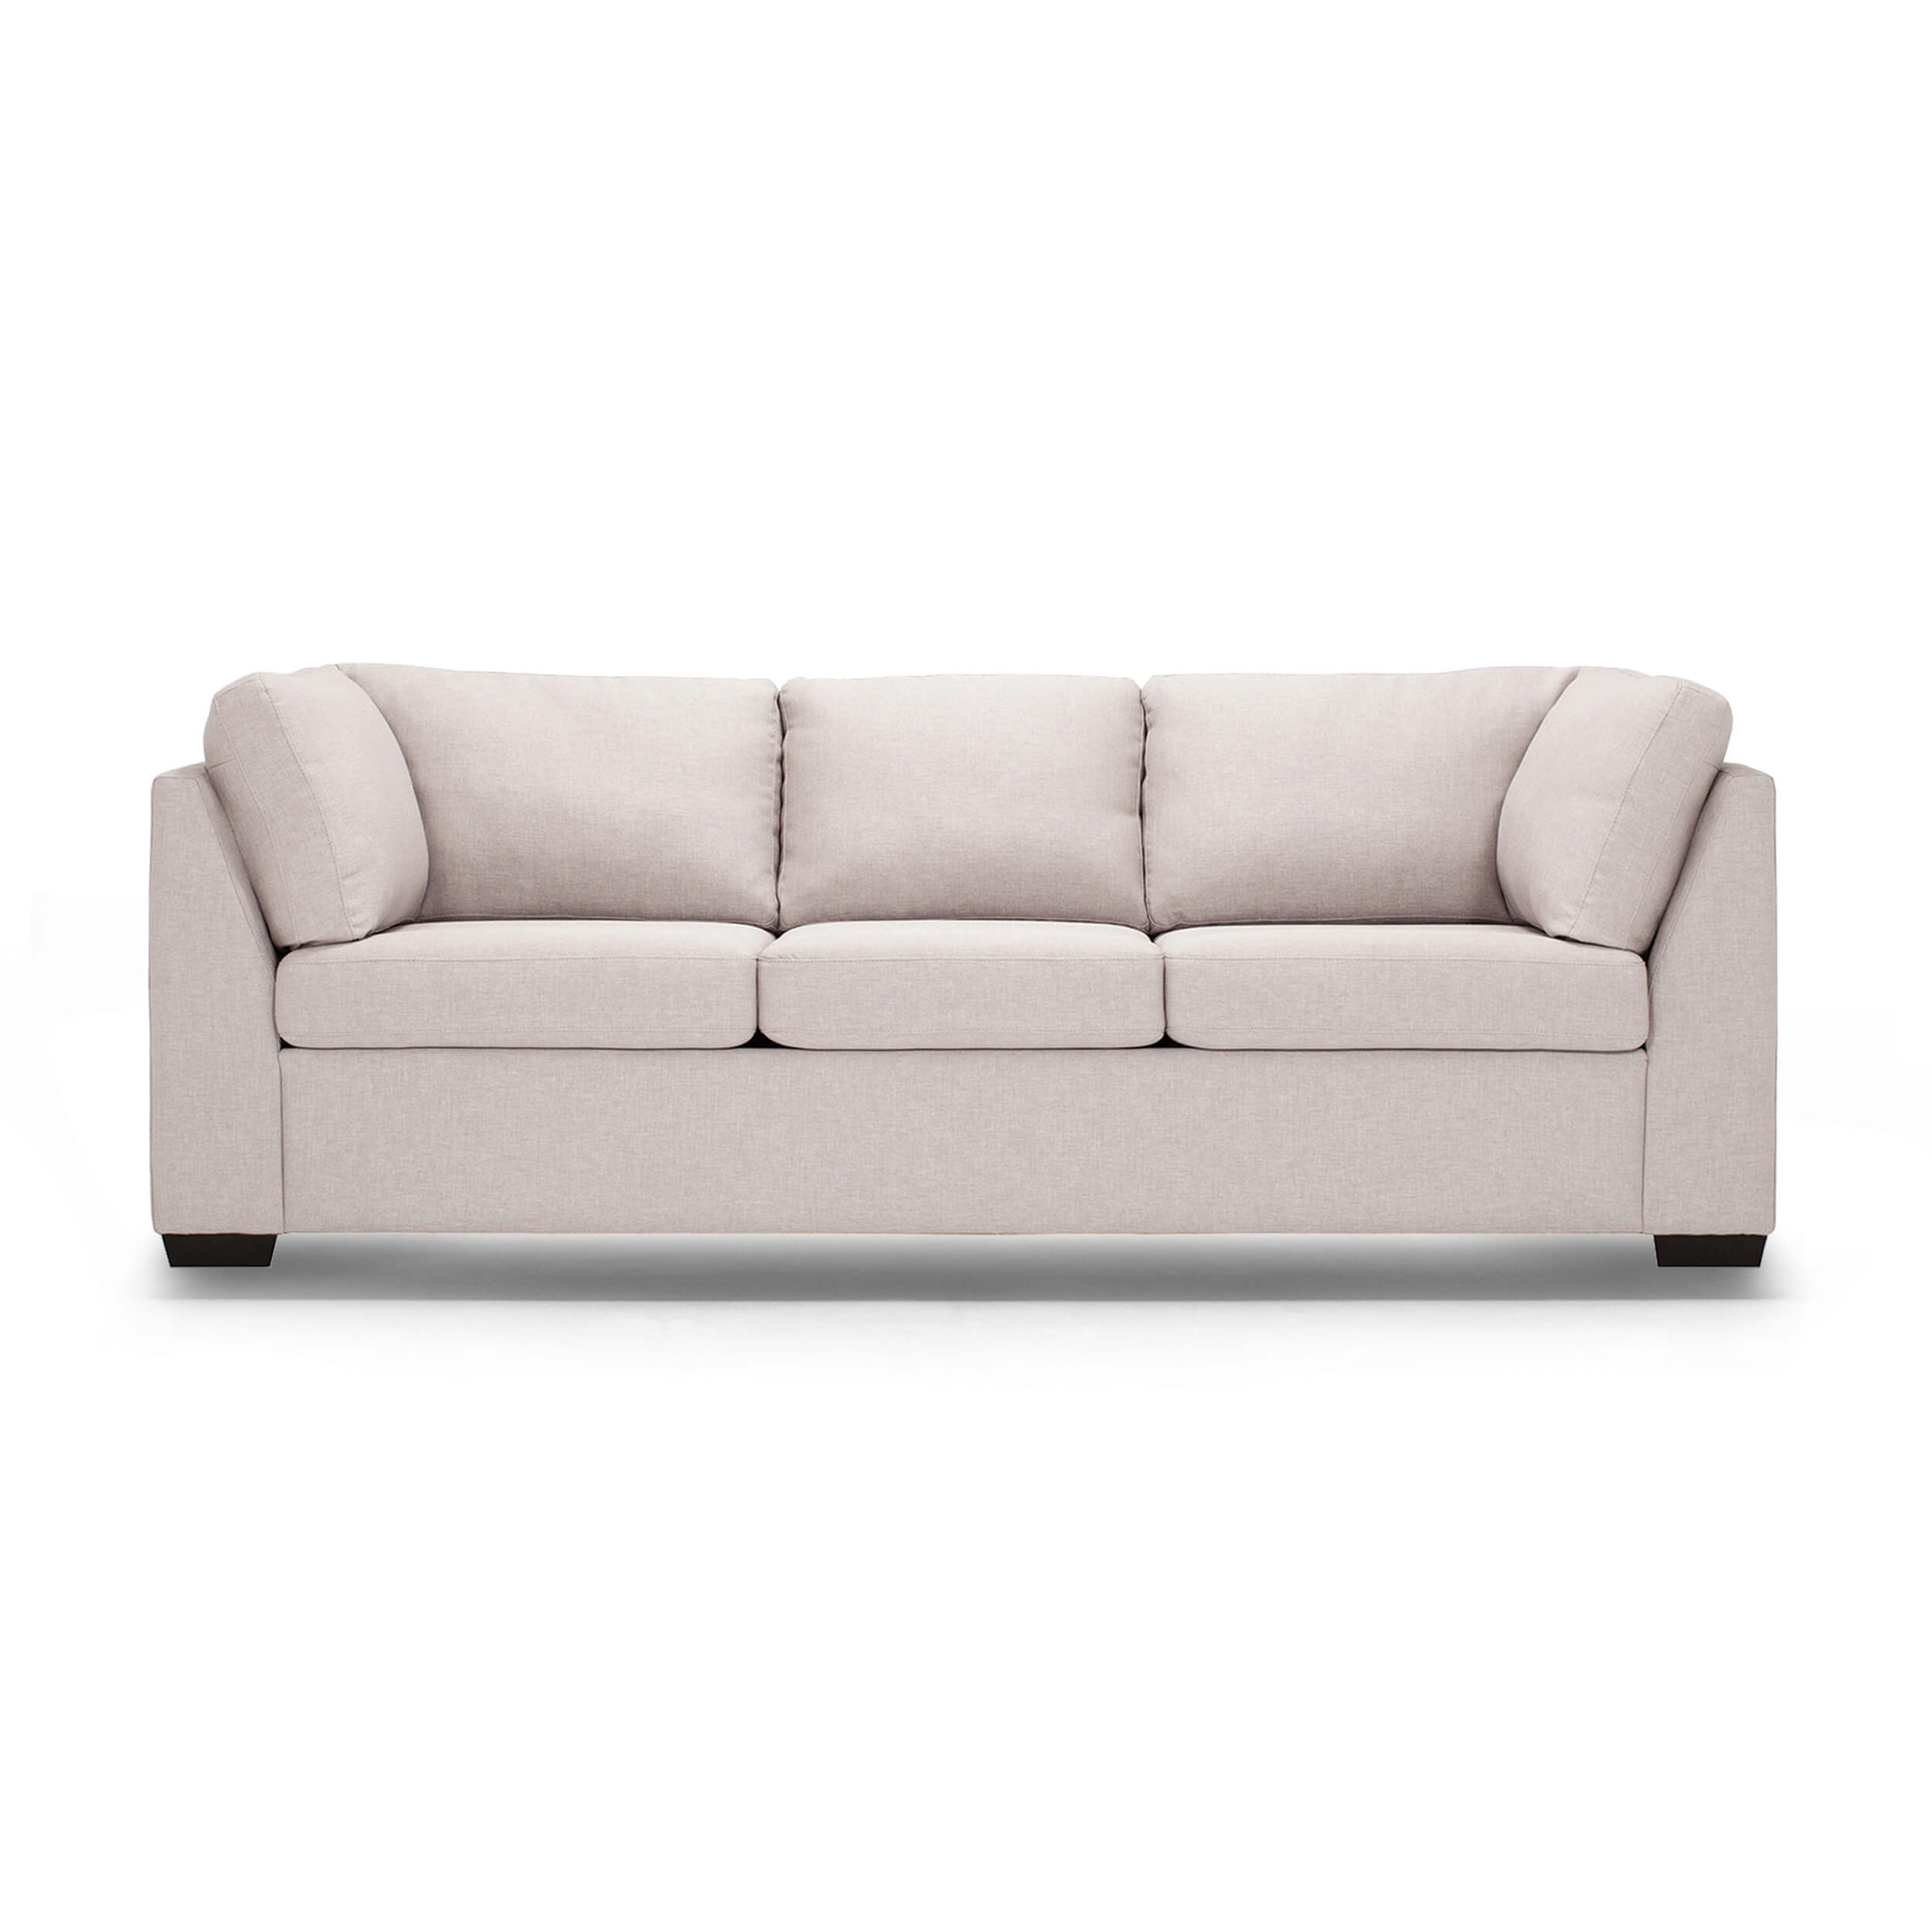 eq3 sofa ashley furniture durablend sleeper salema fabric